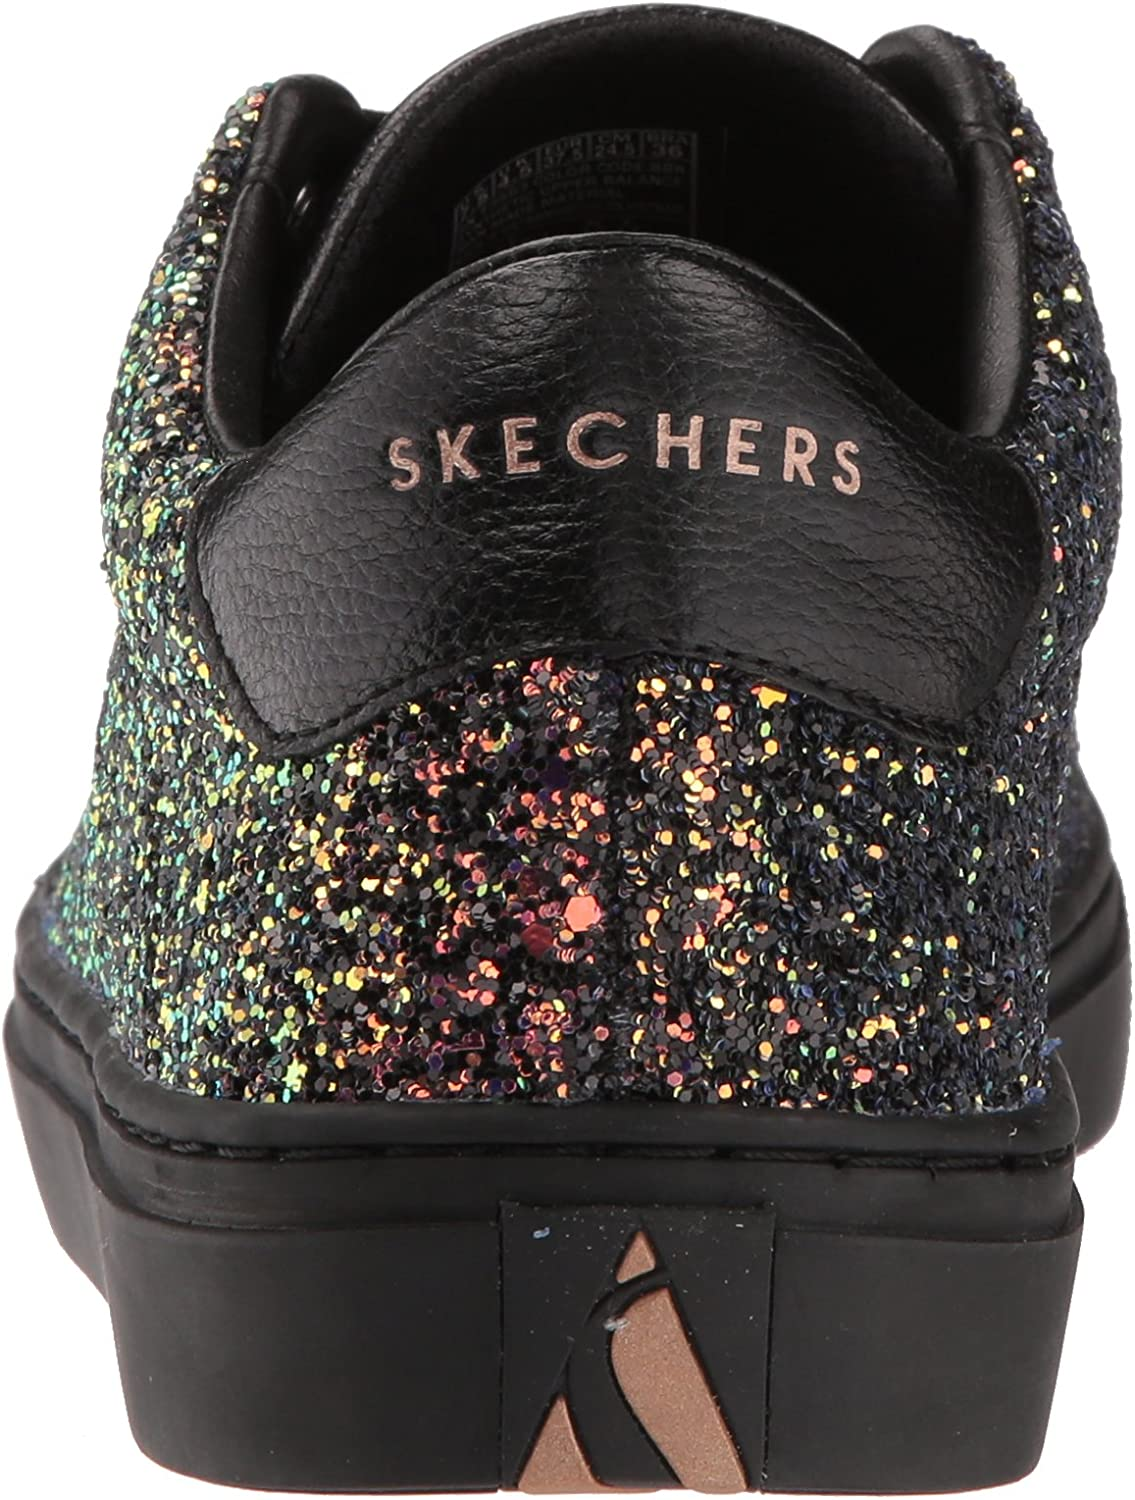 skechers awesome sauce